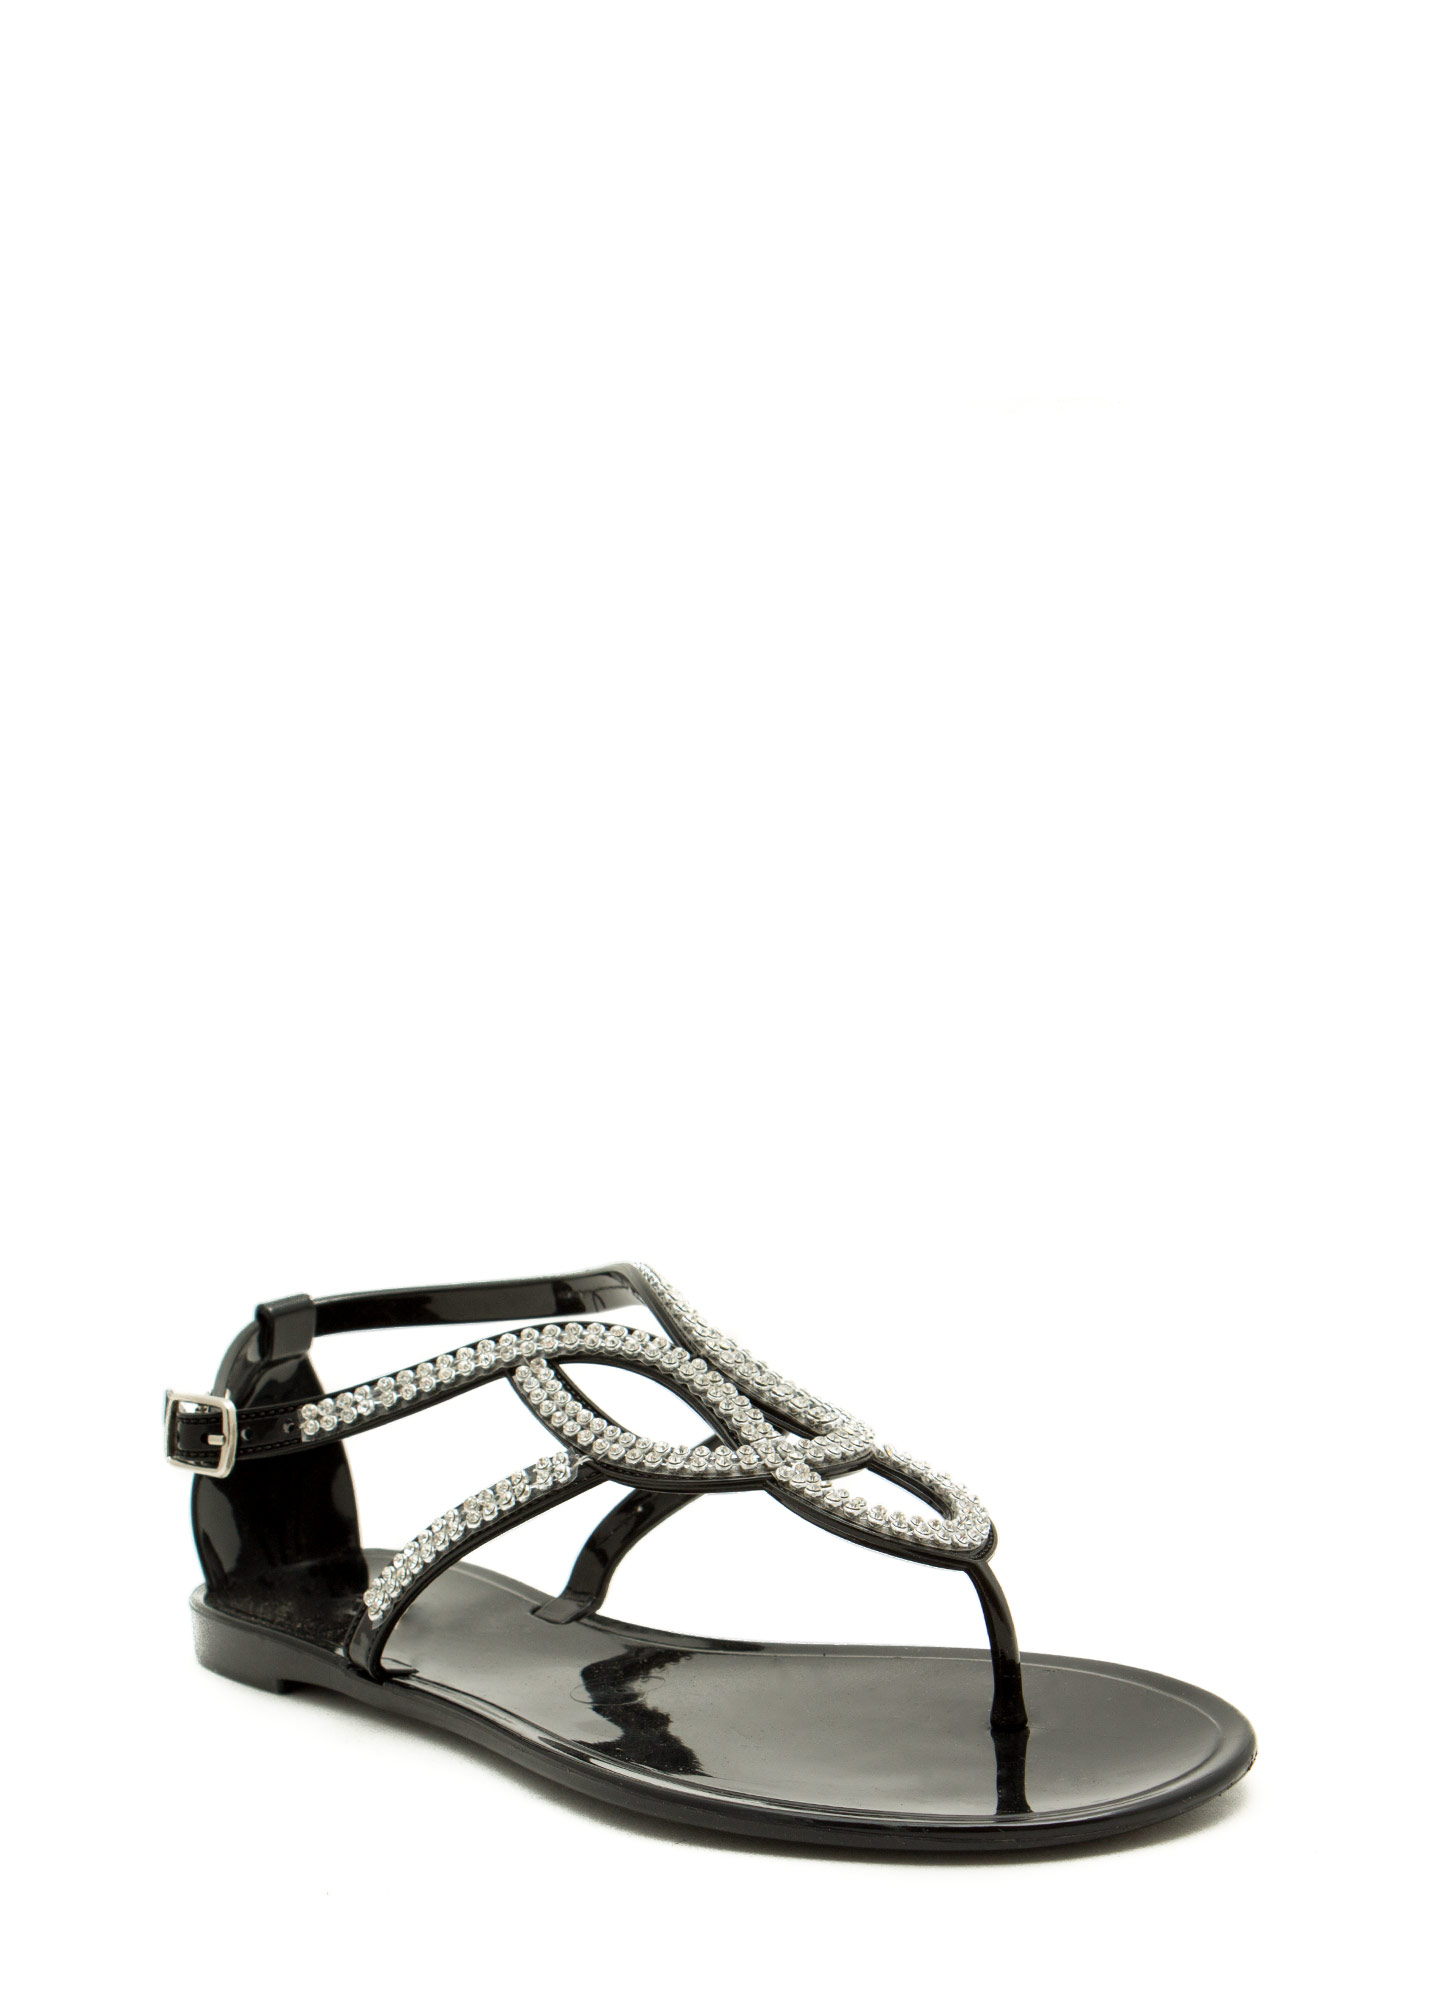 Grown Up Faux Jewel Jelly Sandals BLACK